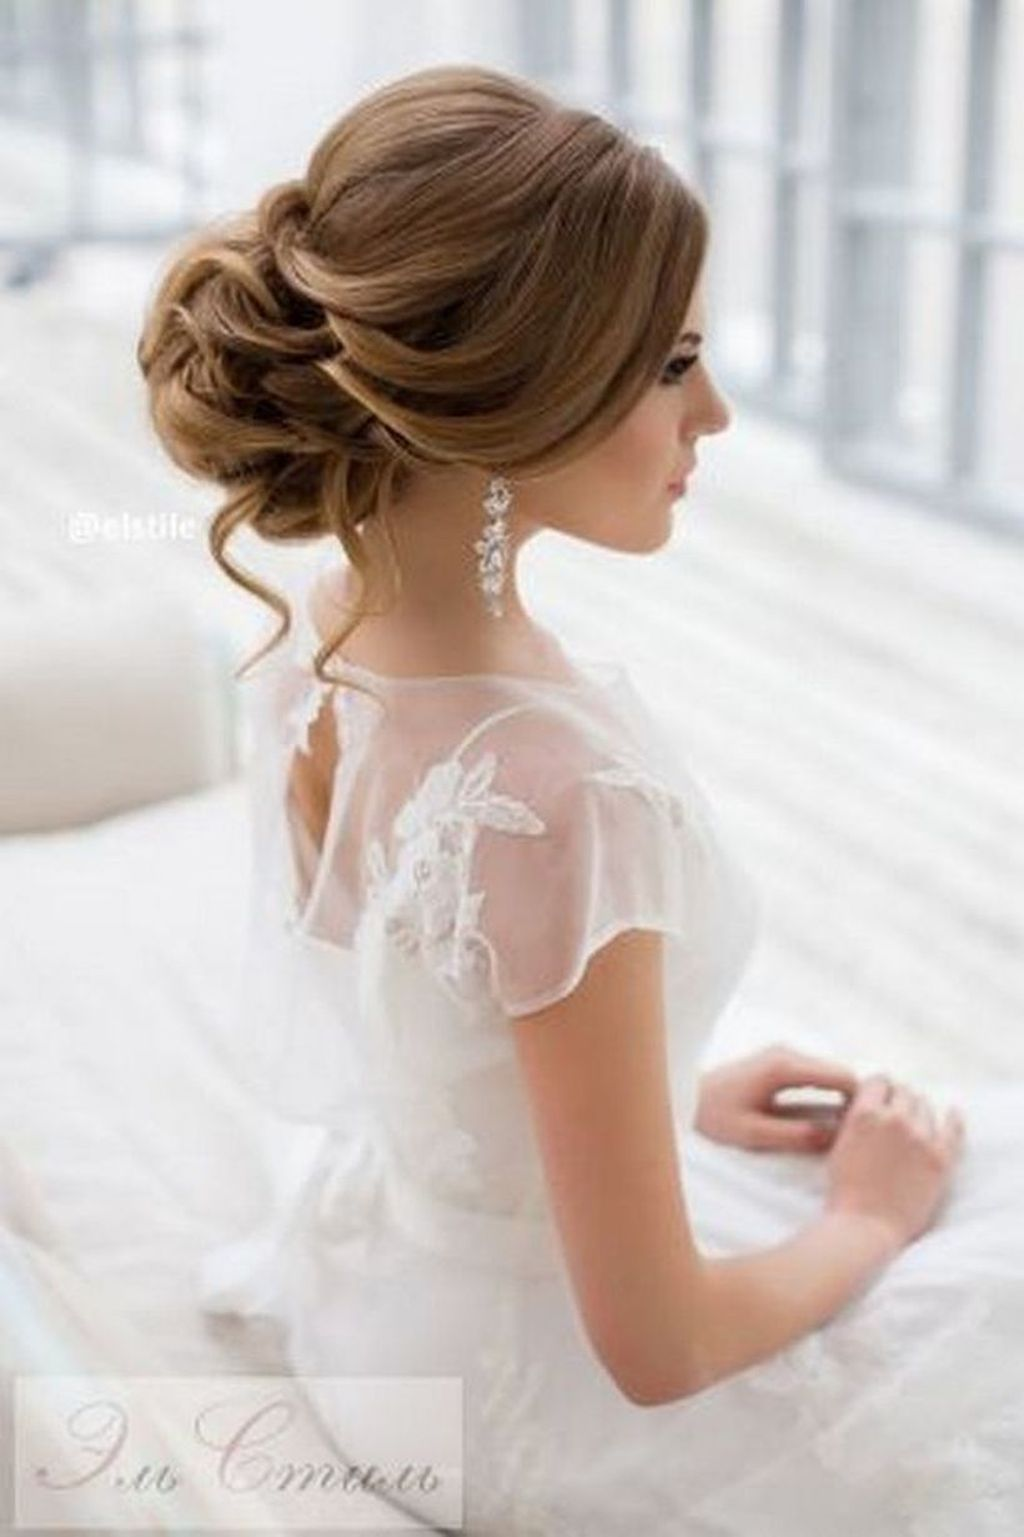 Pin By Su Sds On Chic Elegant Wedding Hair Inspiration Long